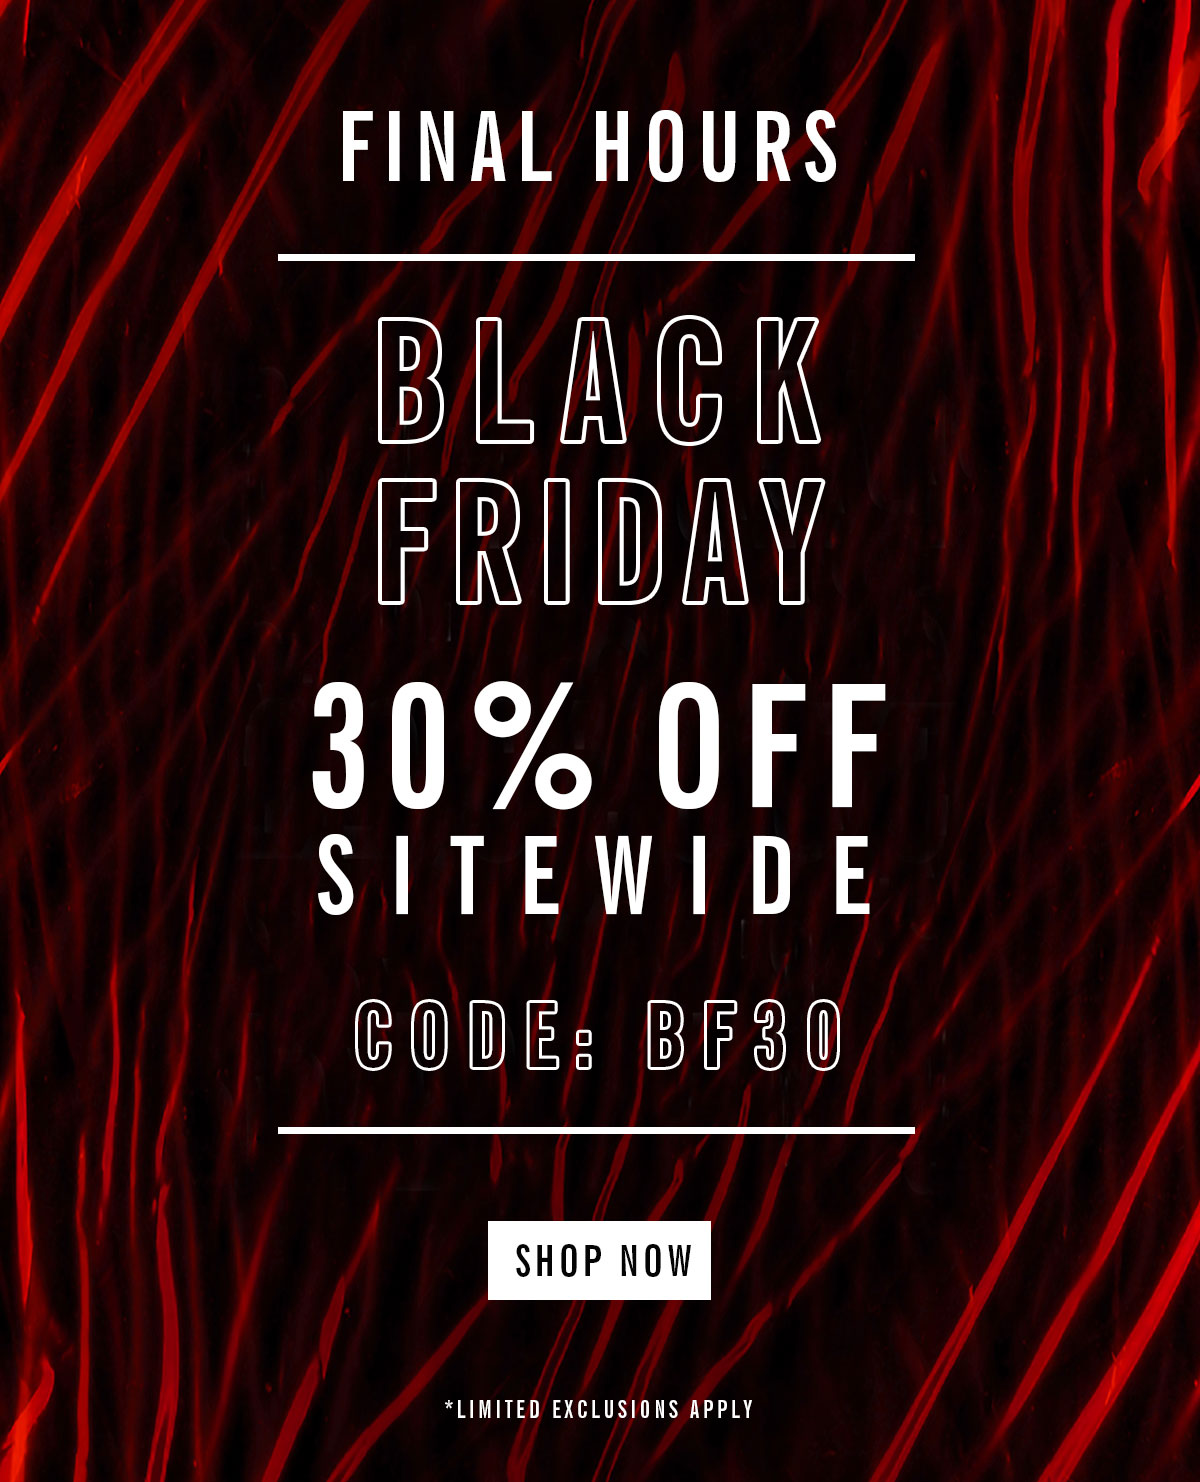 Final Hours | Black Friday | 30% Off Sitewide | Code: BF30 | Shop Now | Limited Exclusions Apply